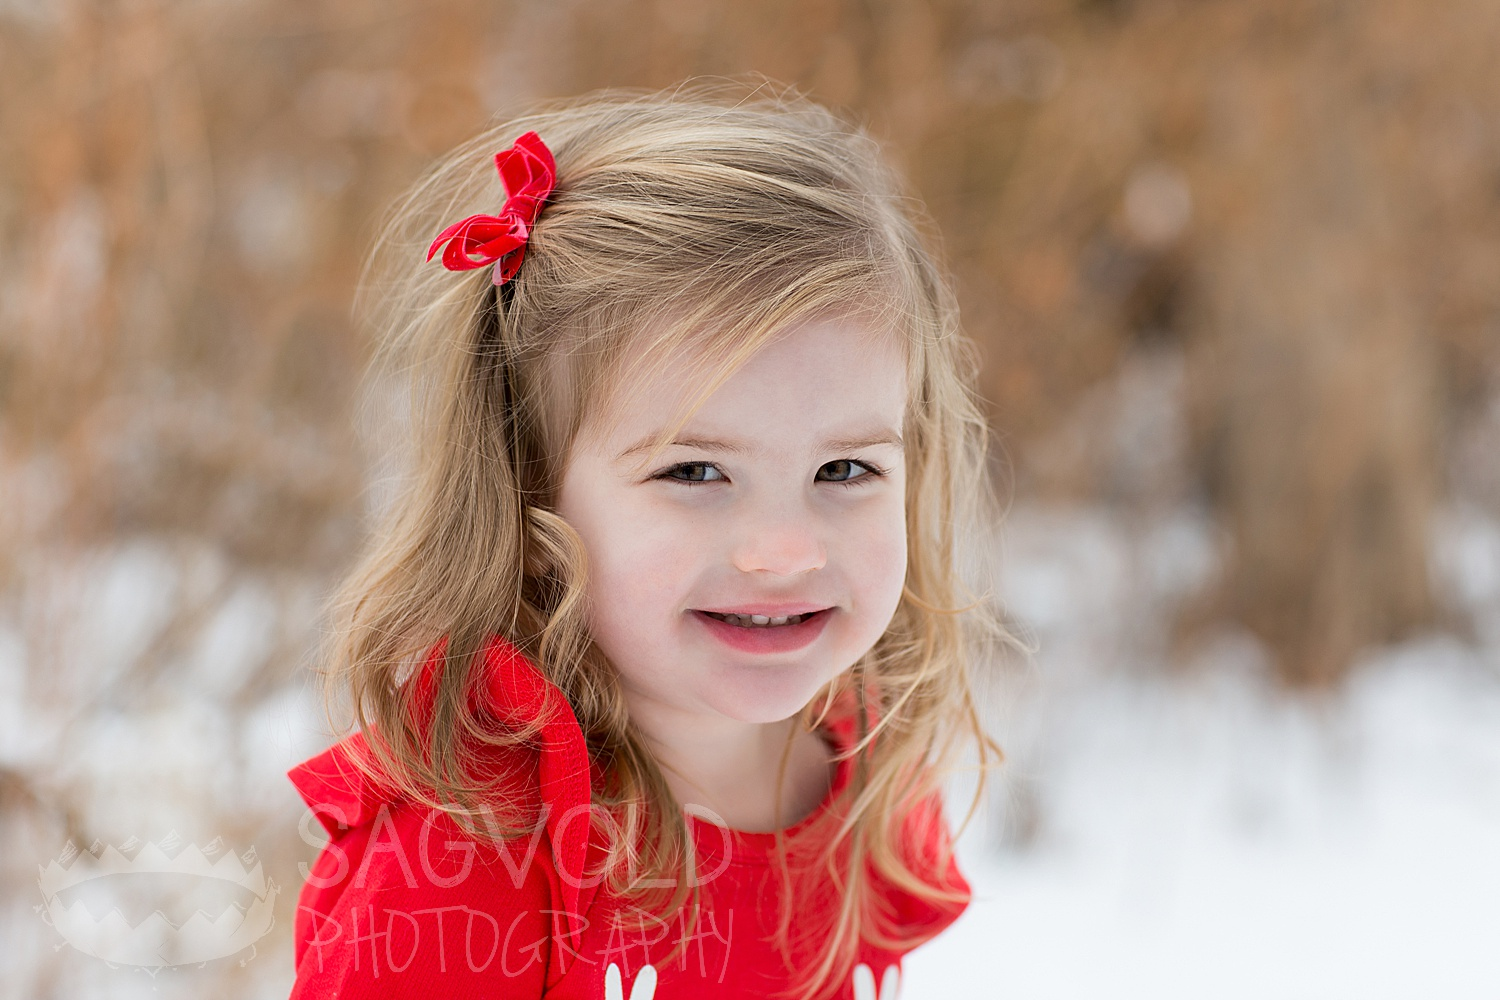 Child picture Fargo ND child photographer Janna Sagvold Photography